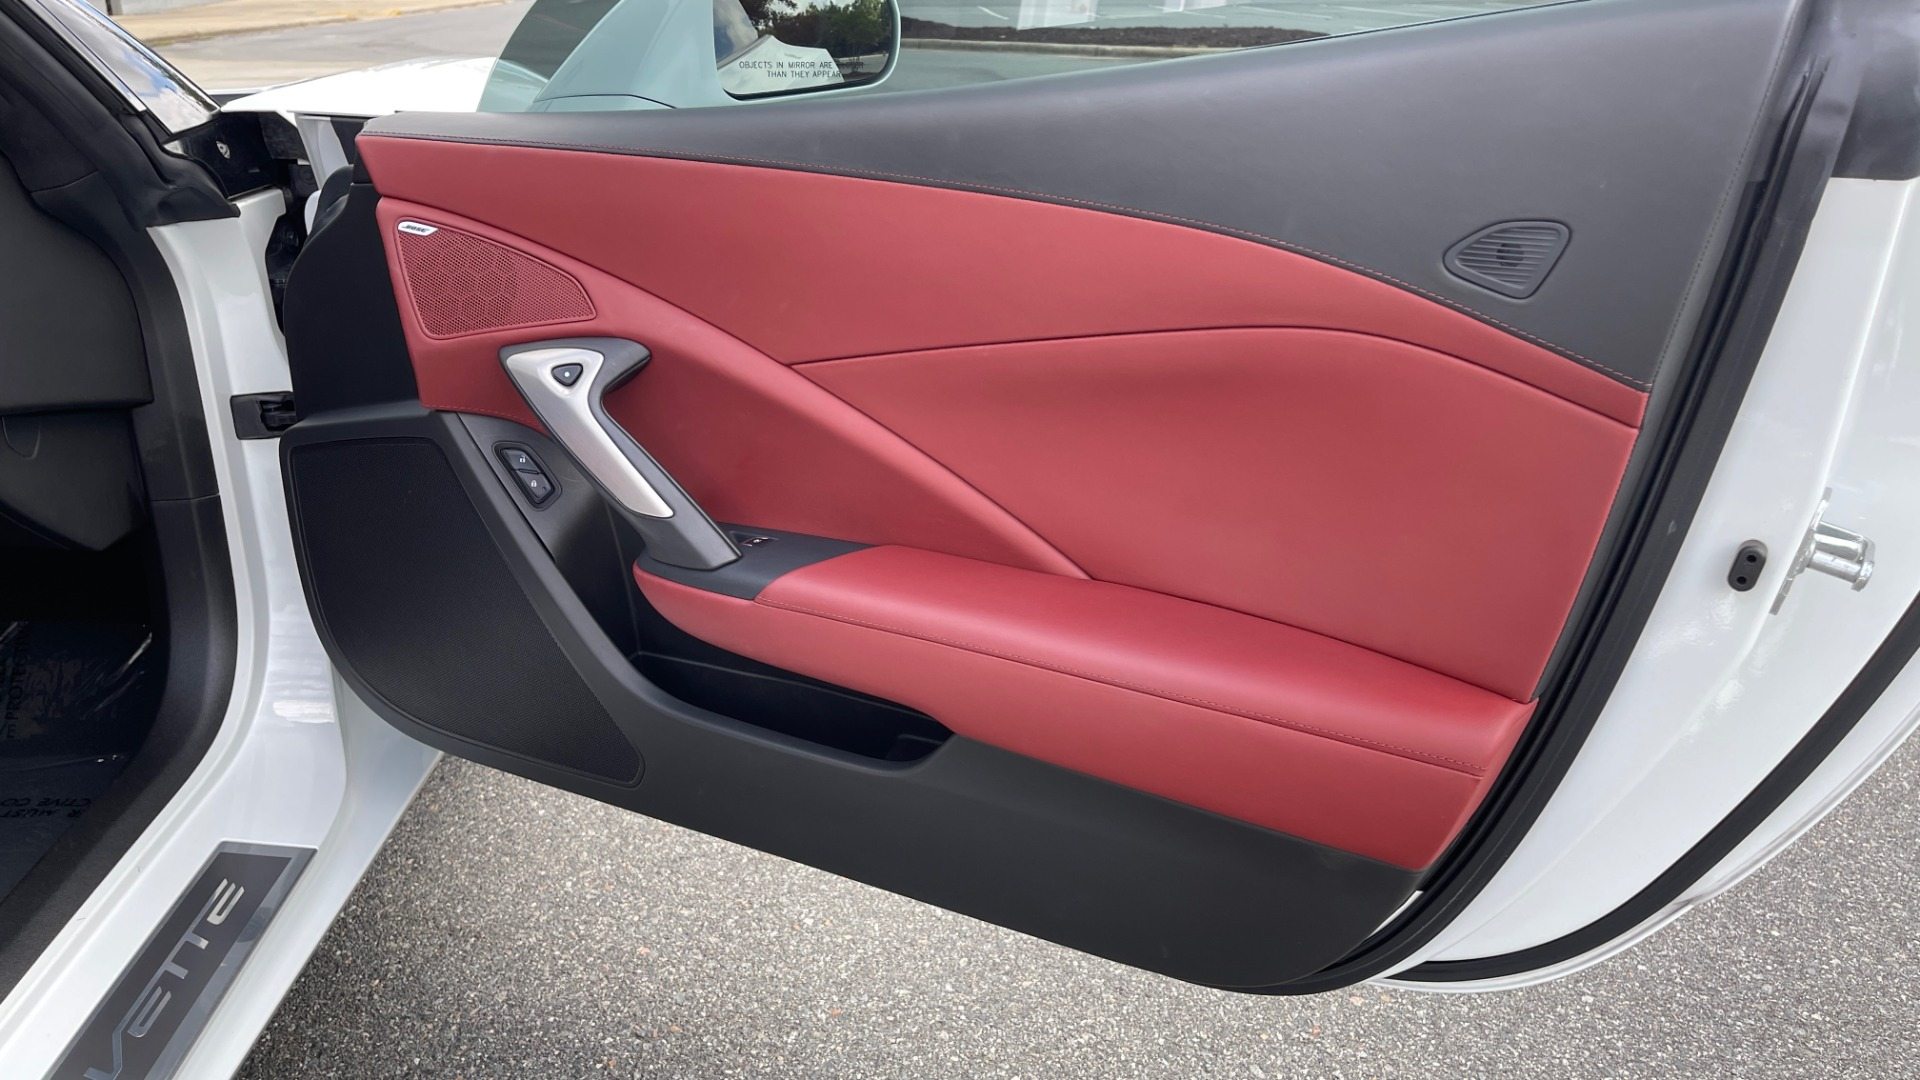 Used 2016 Chevrolet CORVETTE C7 STINGRAY COUPE Z51 3LT / NAV / PERF TRACTION MGMT / REARVIEW for sale Sold at Formula Imports in Charlotte NC 28227 60